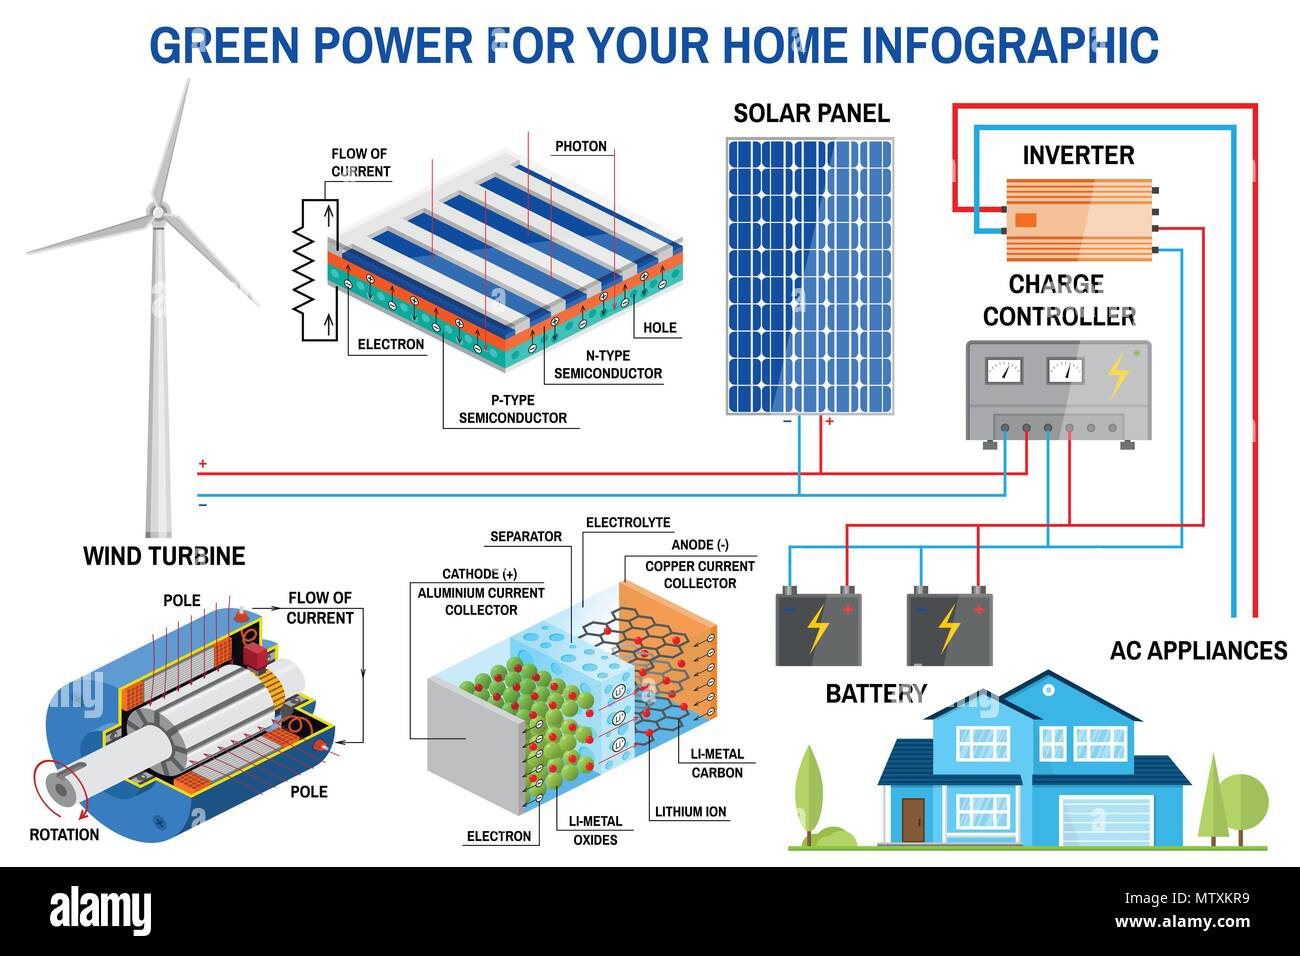 Home Solar Wind Power Diagram Diy Enthusiasts Wiring Diagrams Wire Panel And Generation System For Infographic Rh Alamy Com House Energy